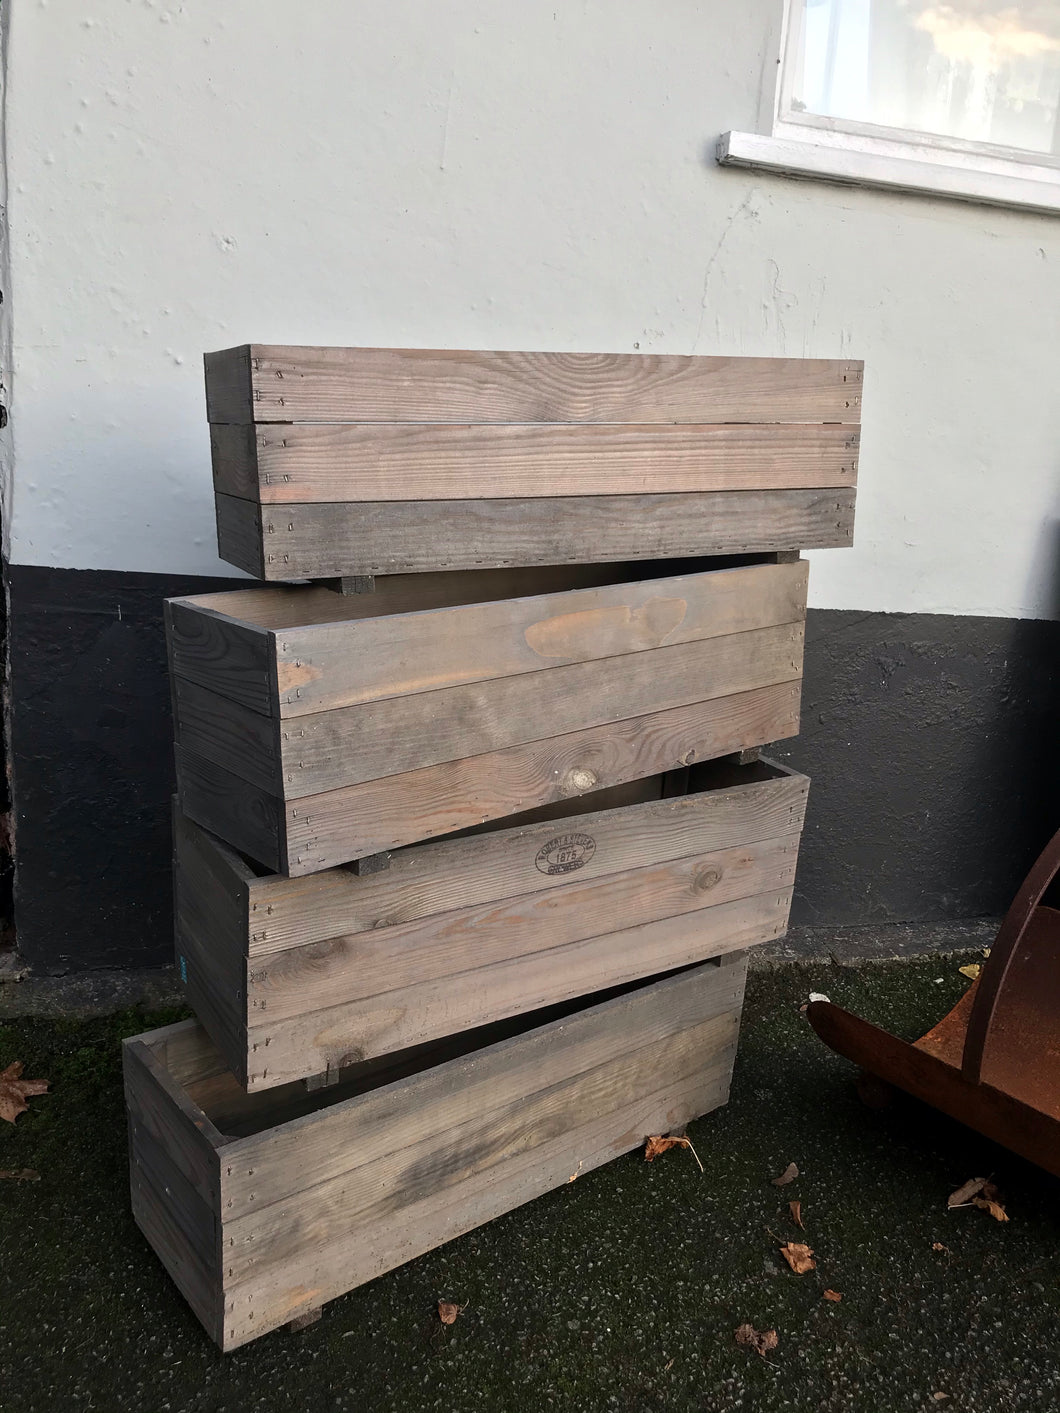 Wooden Rectangular Planters - La Di Da Interiors